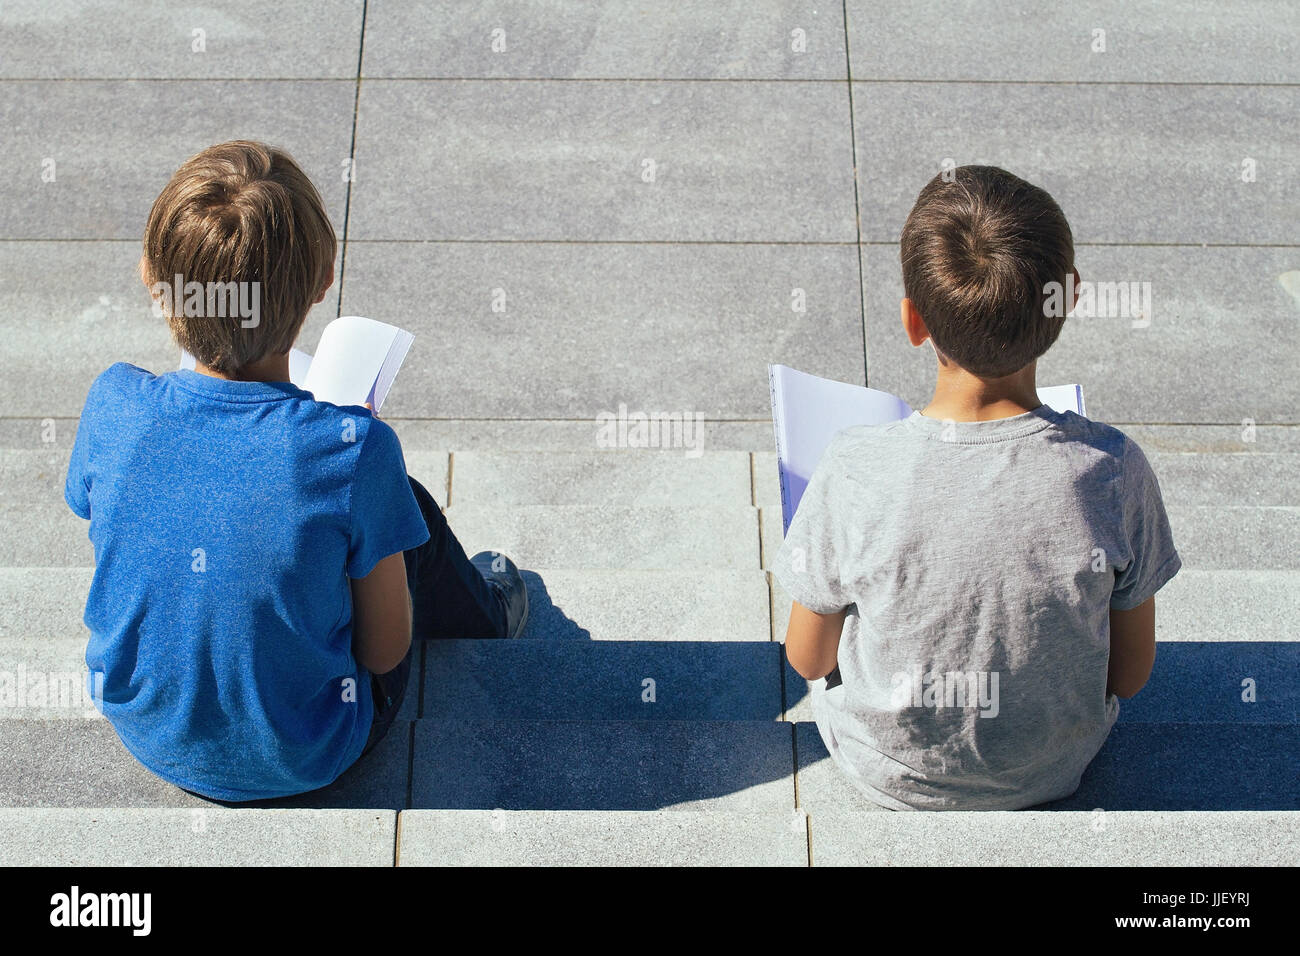 Two boys reading books sitting on the stairs outdoors - Stock Image